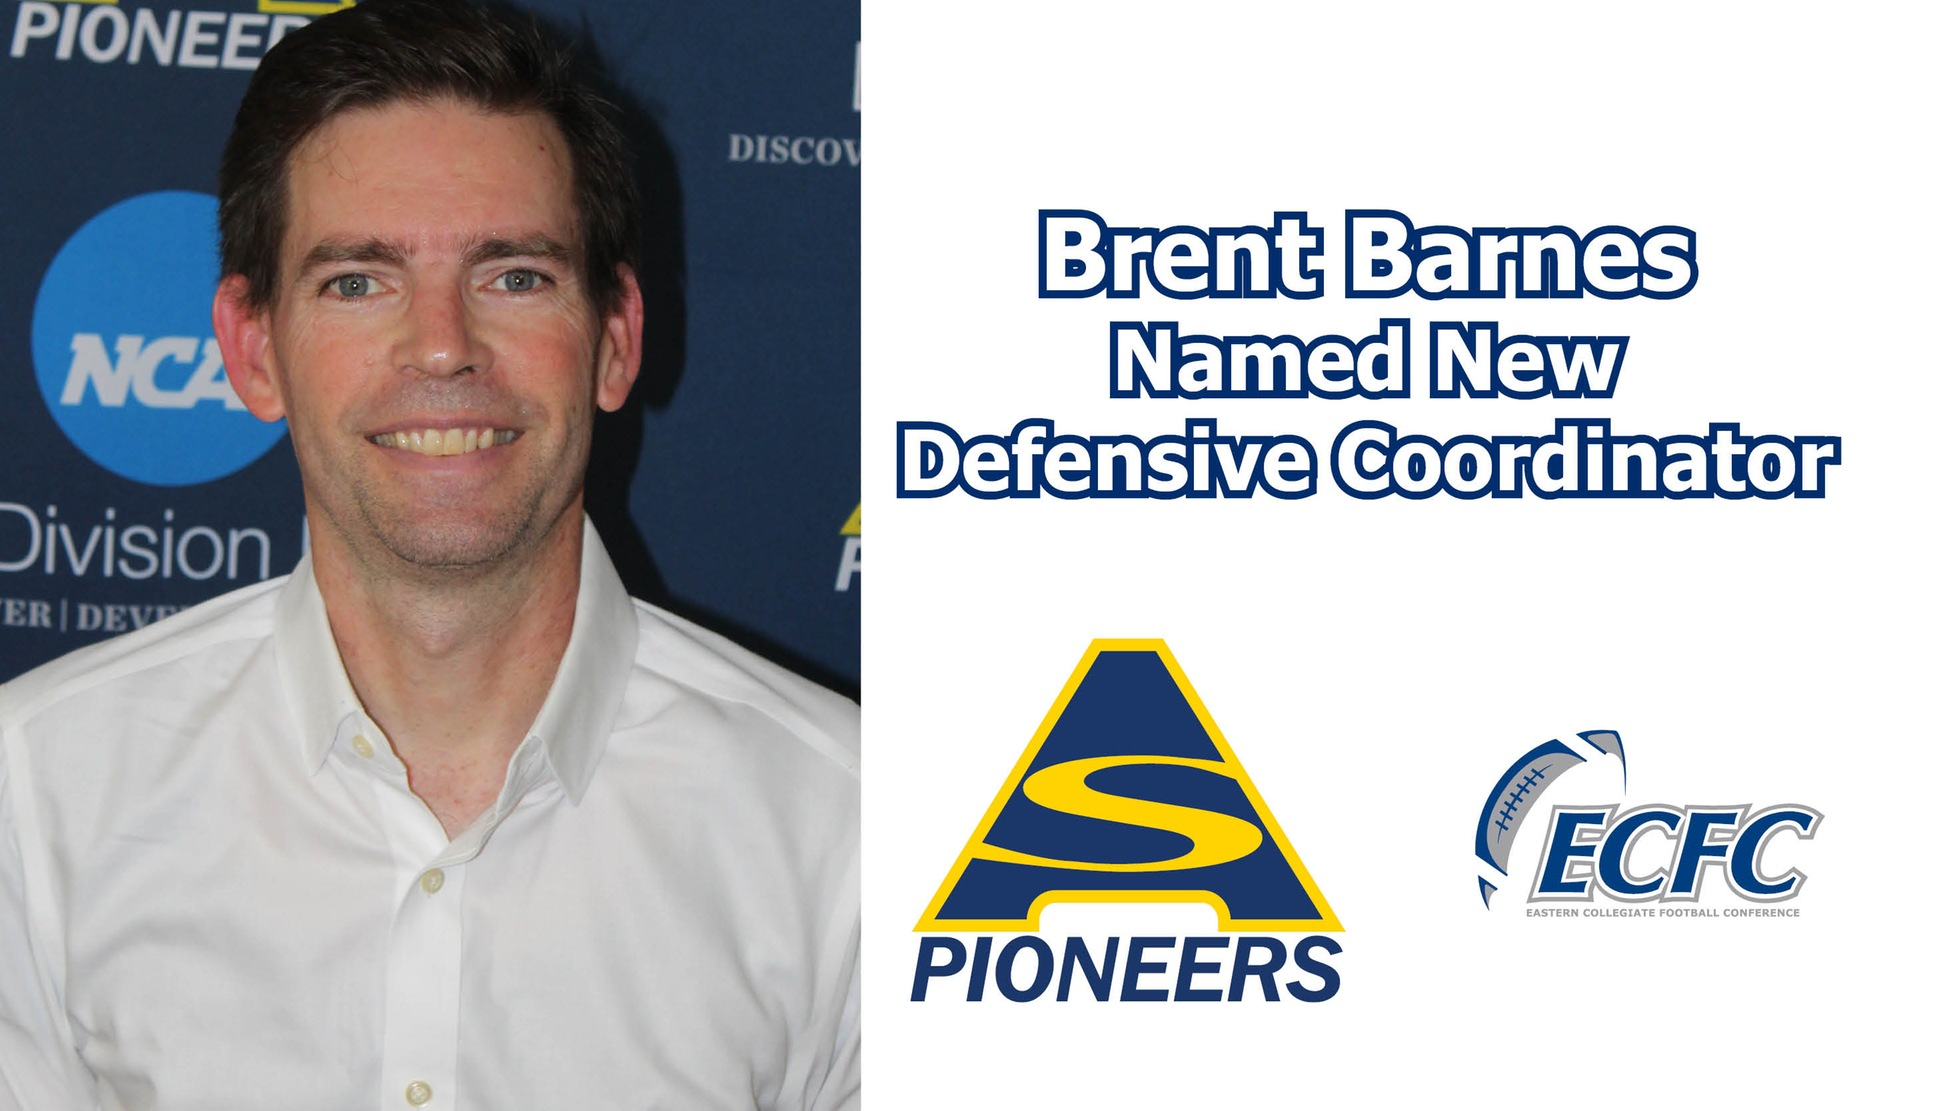 Brent Barnes Named New Defensive Coordinator